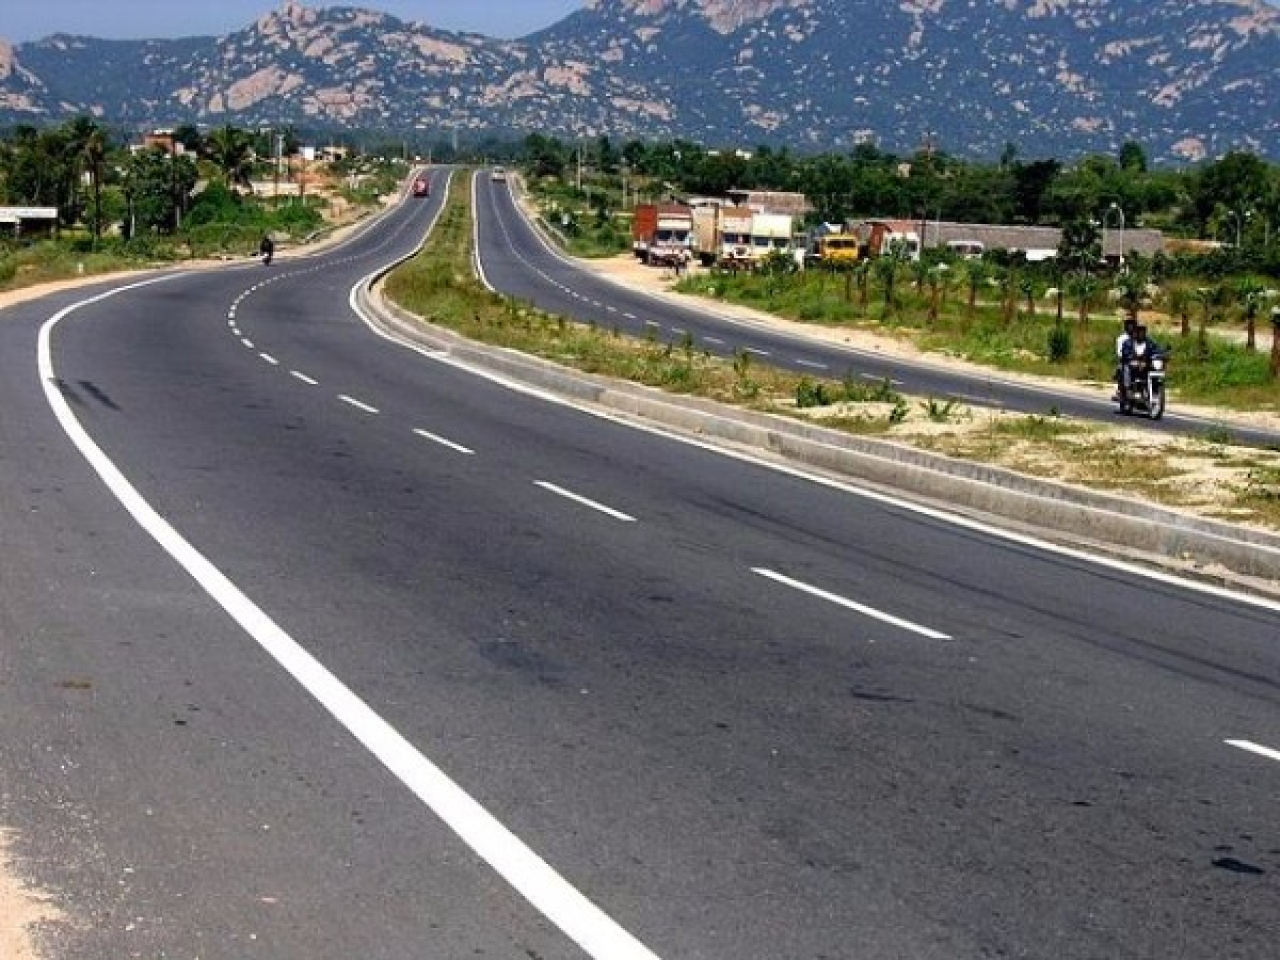 BBIN Road Initiative Takes Off As India Approves $1 Billion Transnational Connectivity Project